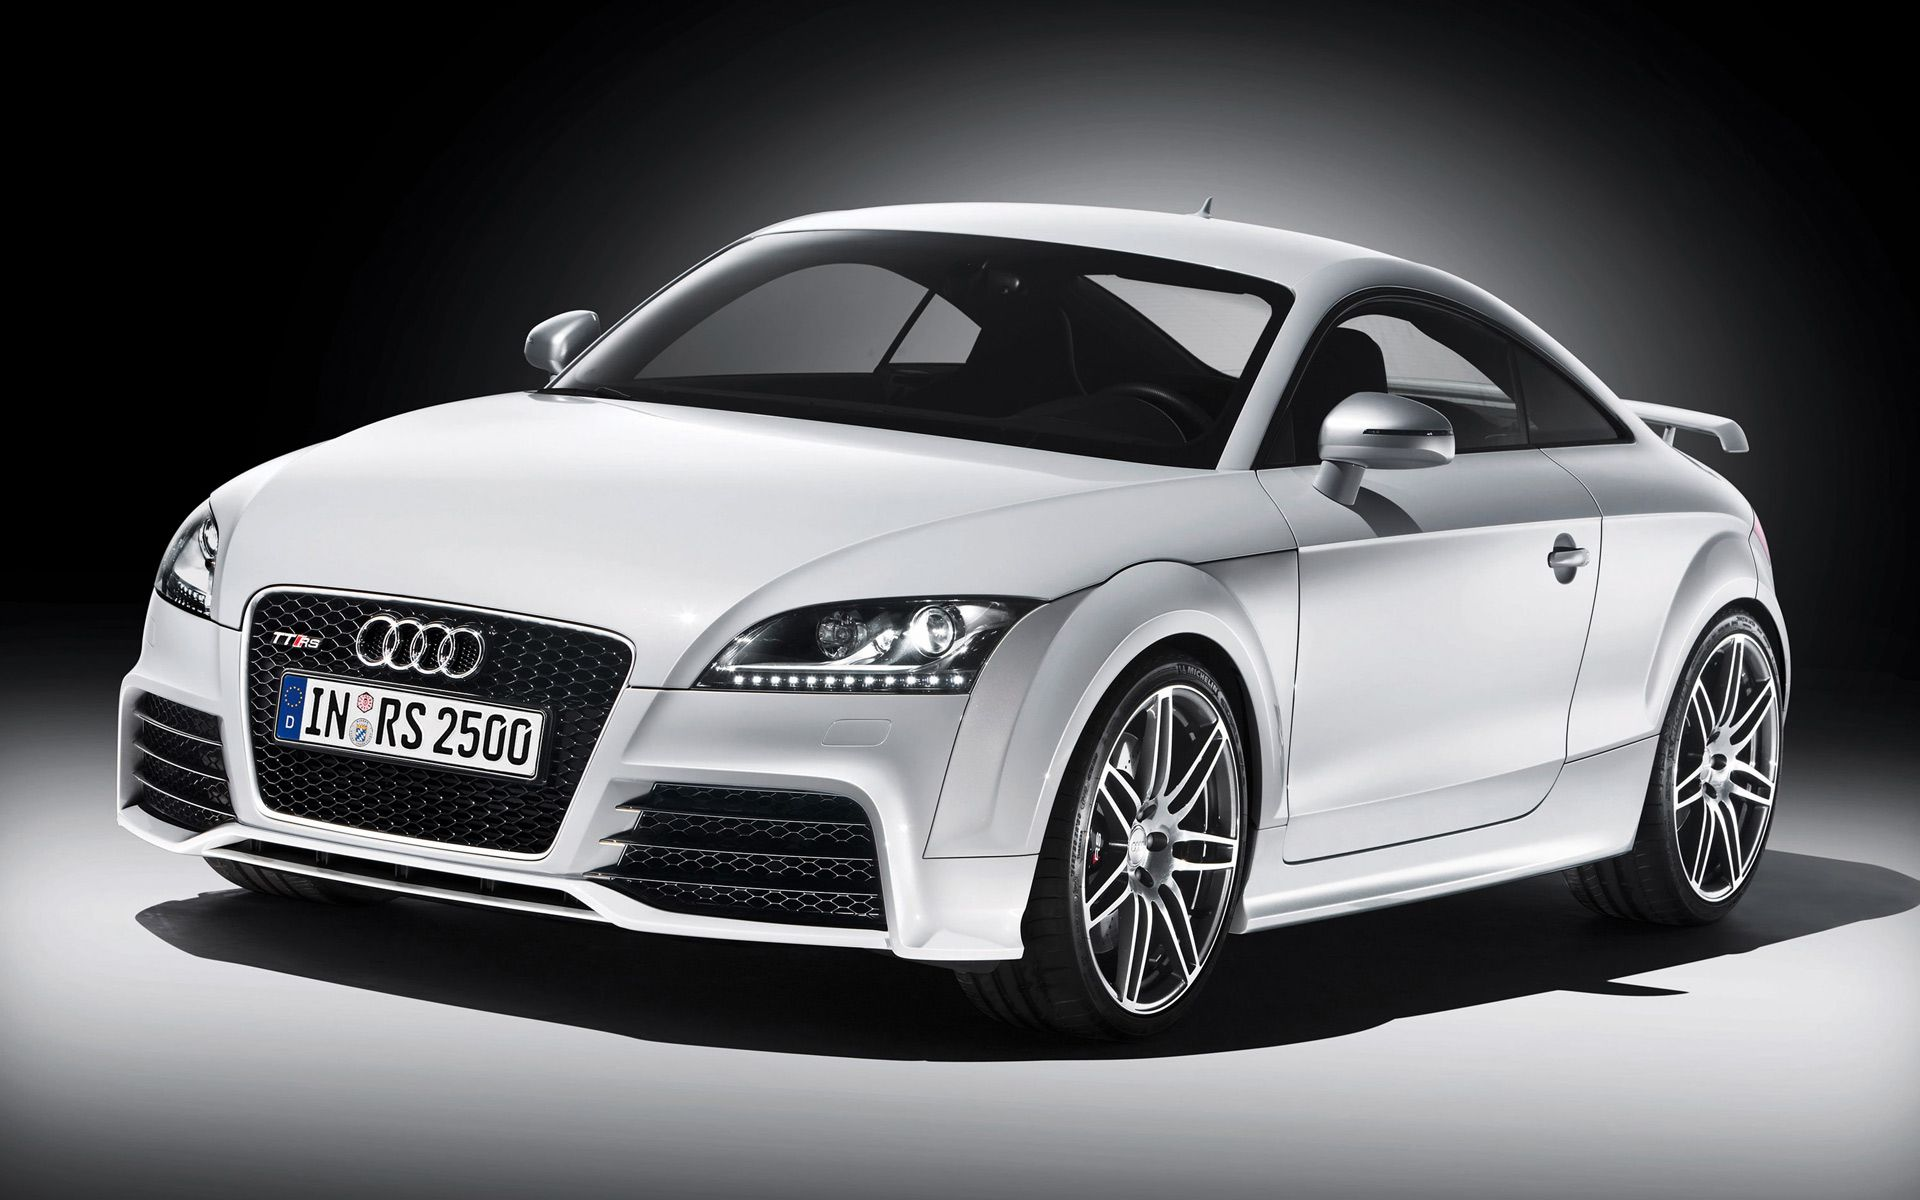 Audi Tt Rs Photos and Wallpapers